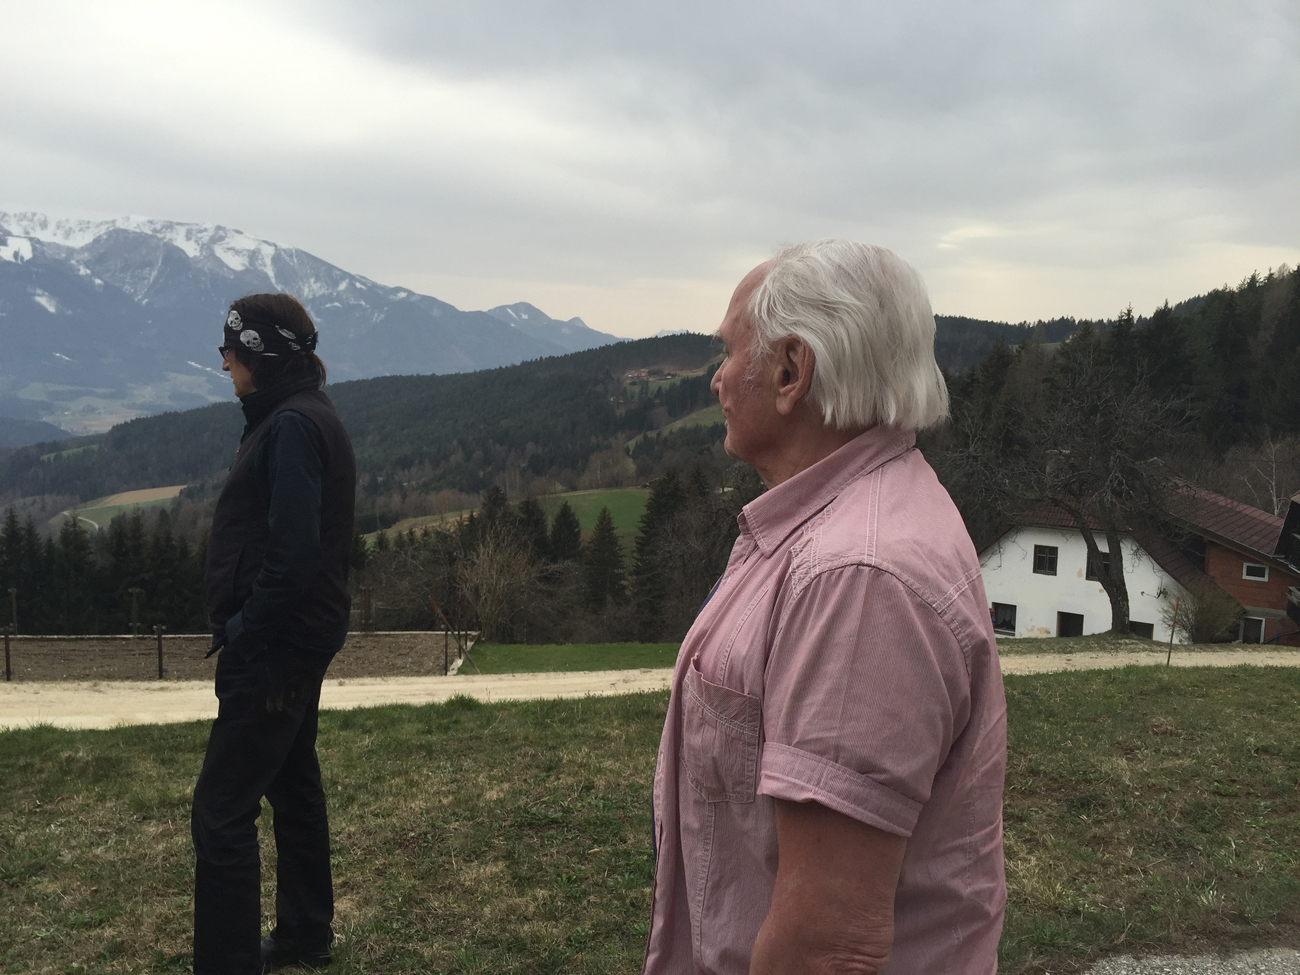 Helnwein and Johann Kresnik in the mountains of Carinthia, Austria